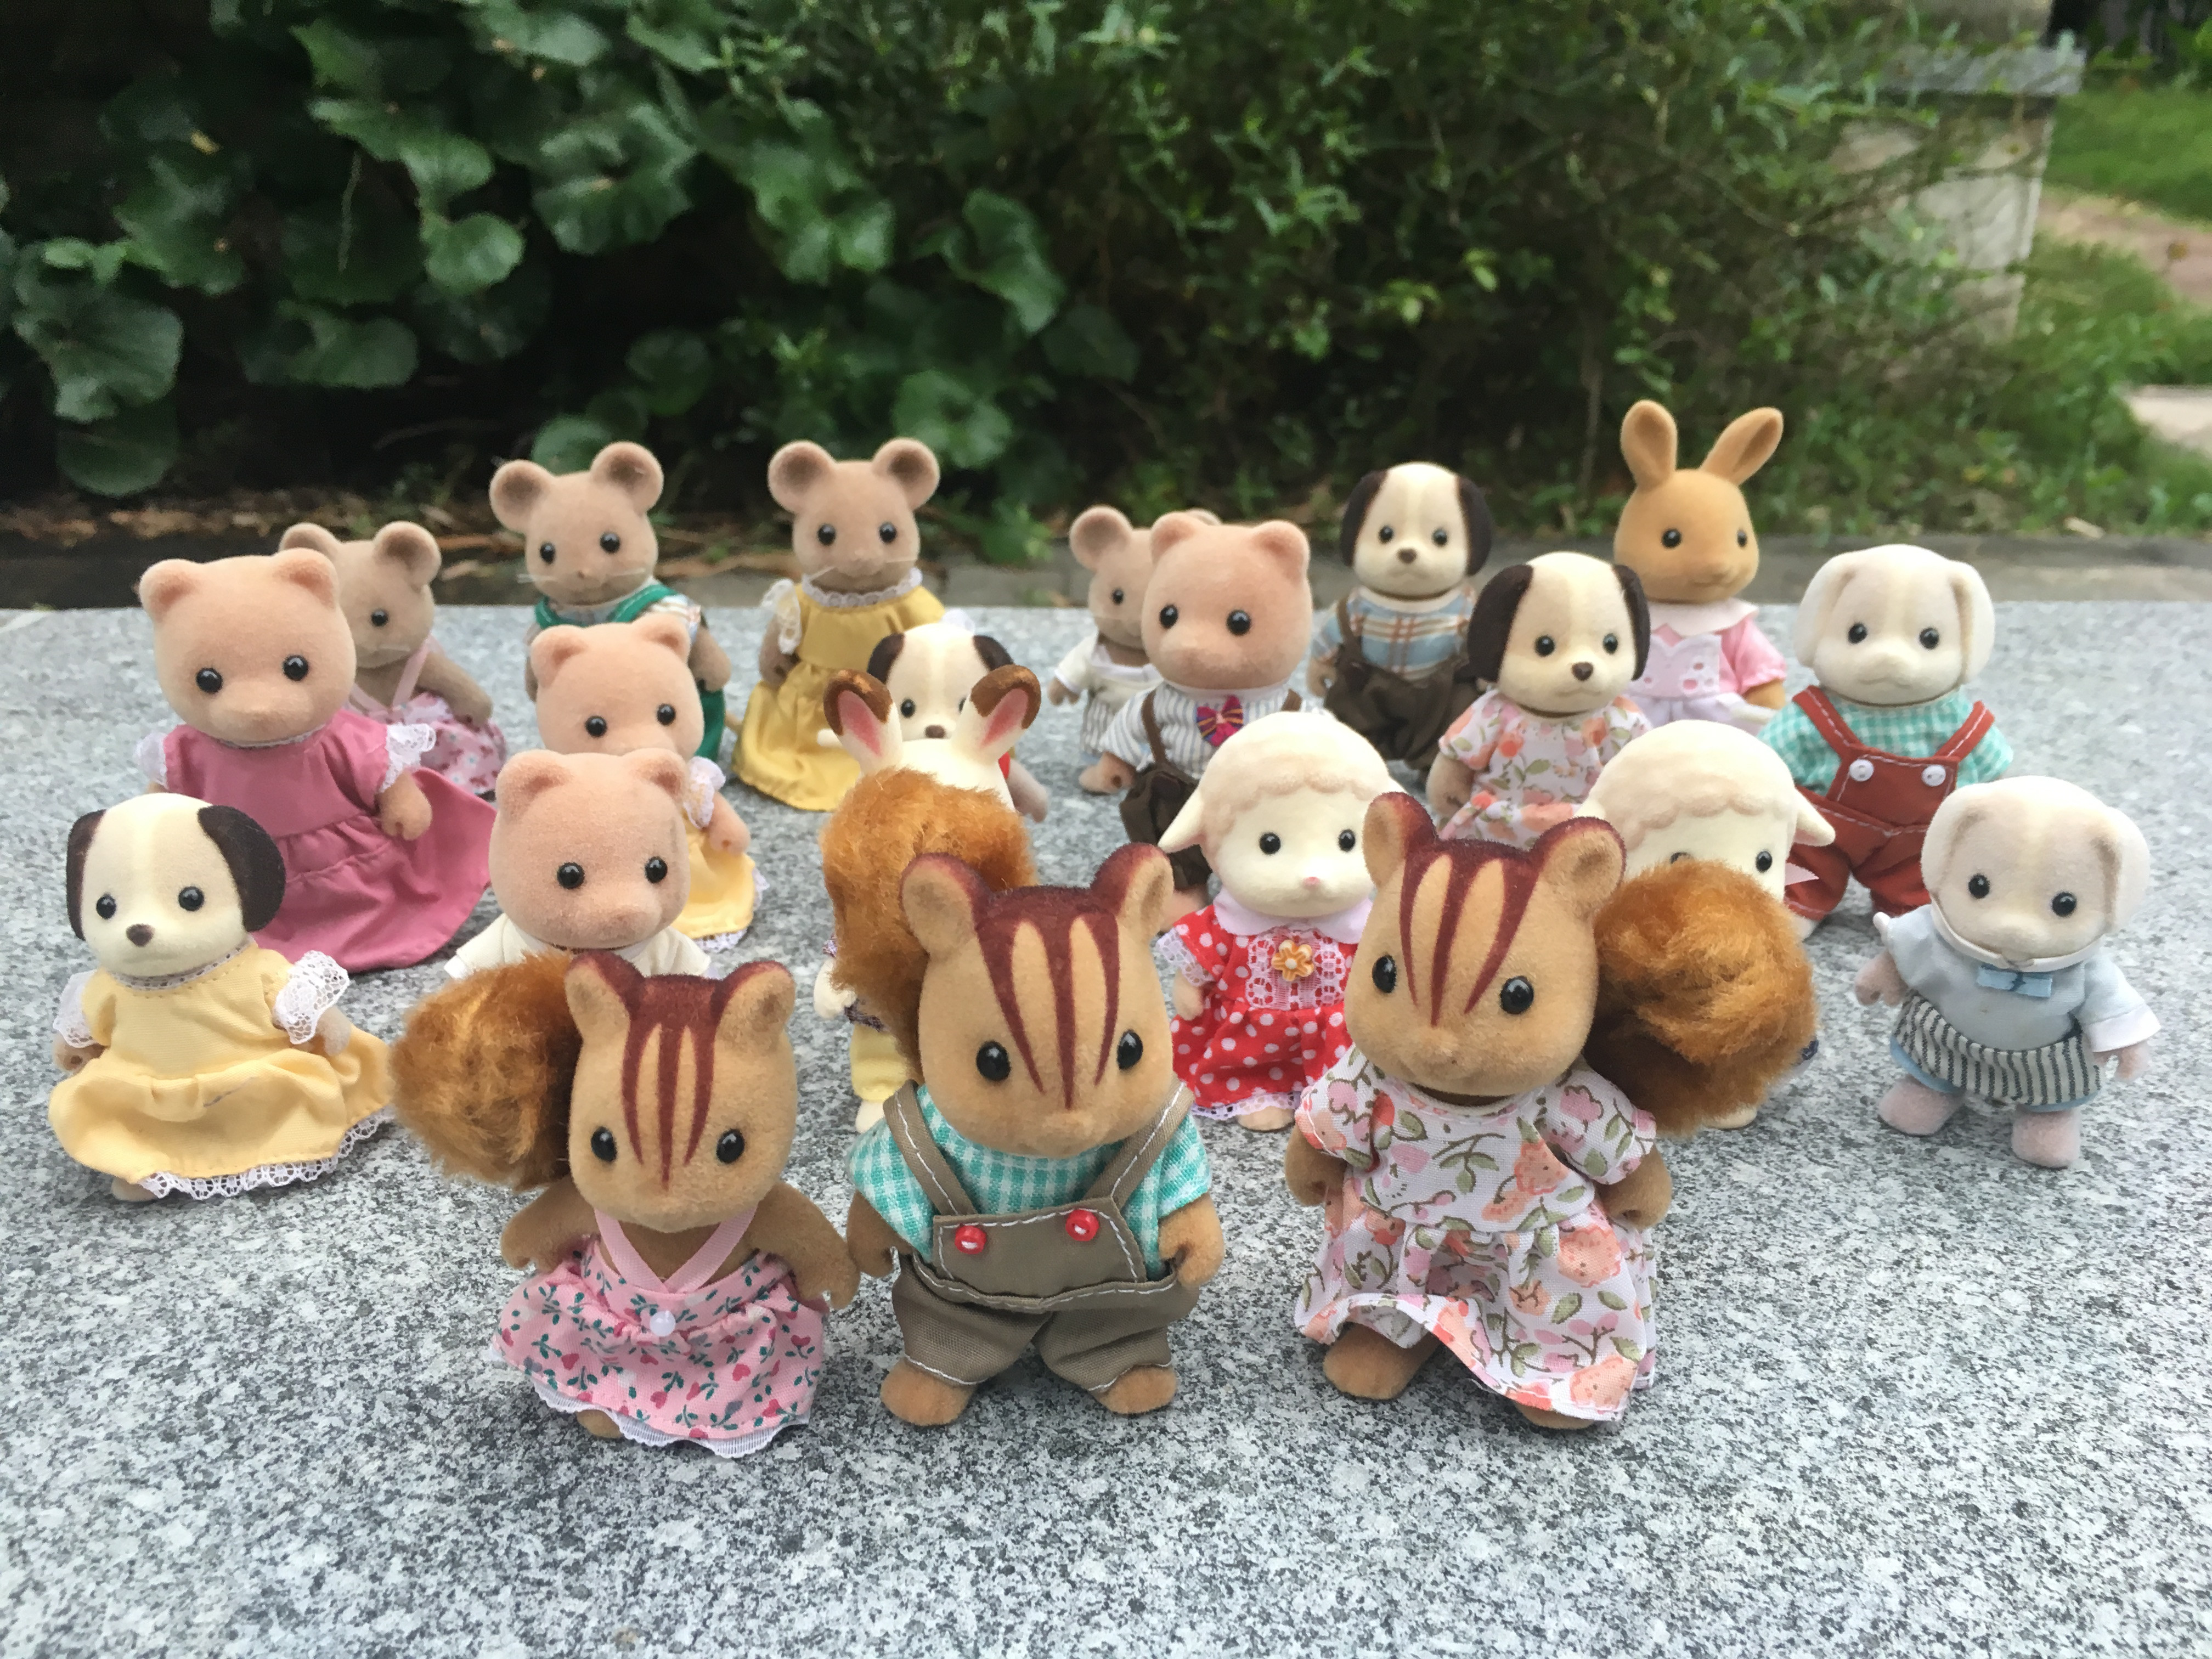 Geniune Sylvanian Families 10pcs Furry Action Figures Dogs/Squrriels/Bear/Mouse/Sheep Random New No PackageGeniune Sylvanian Families 10pcs Furry Action Figures Dogs/Squrriels/Bear/Mouse/Sheep Random New No Package